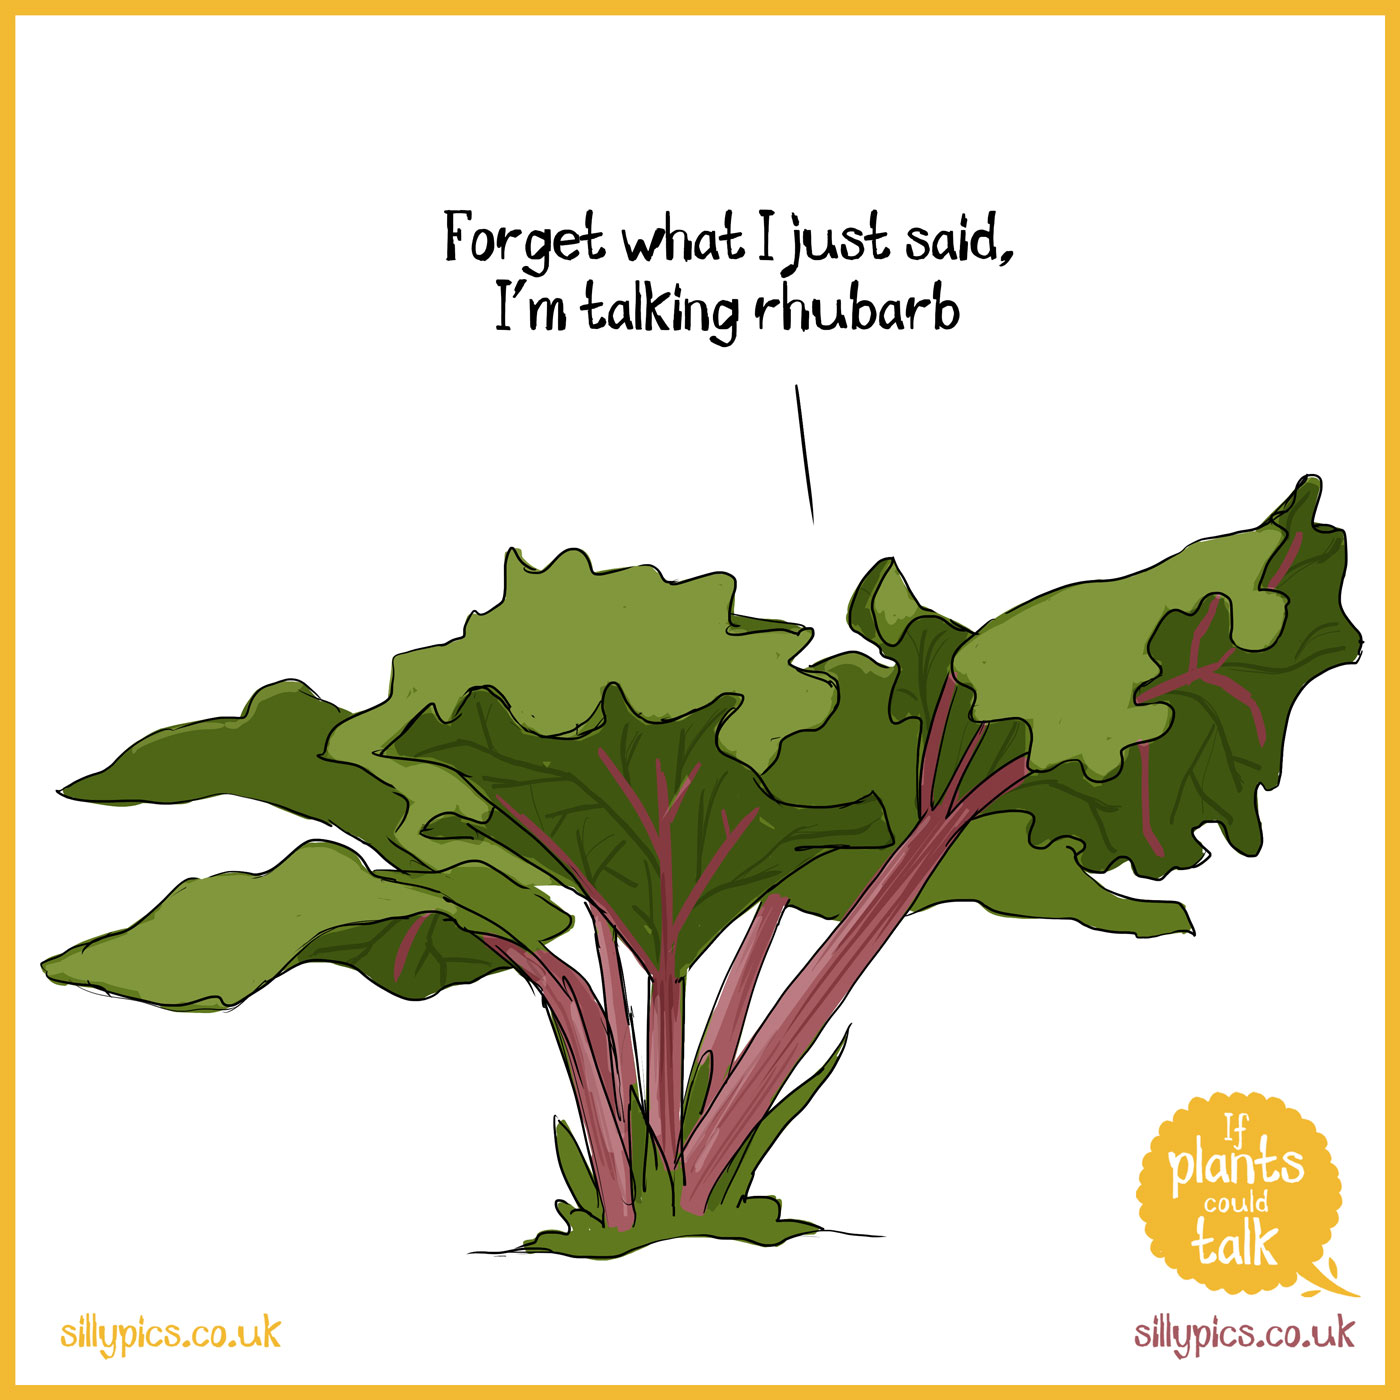 """This is a If plants could talk cartoon. The cartoon shows a rhubarb plant It says """"Forget what I just said, I'm talking rhubarb"""""""